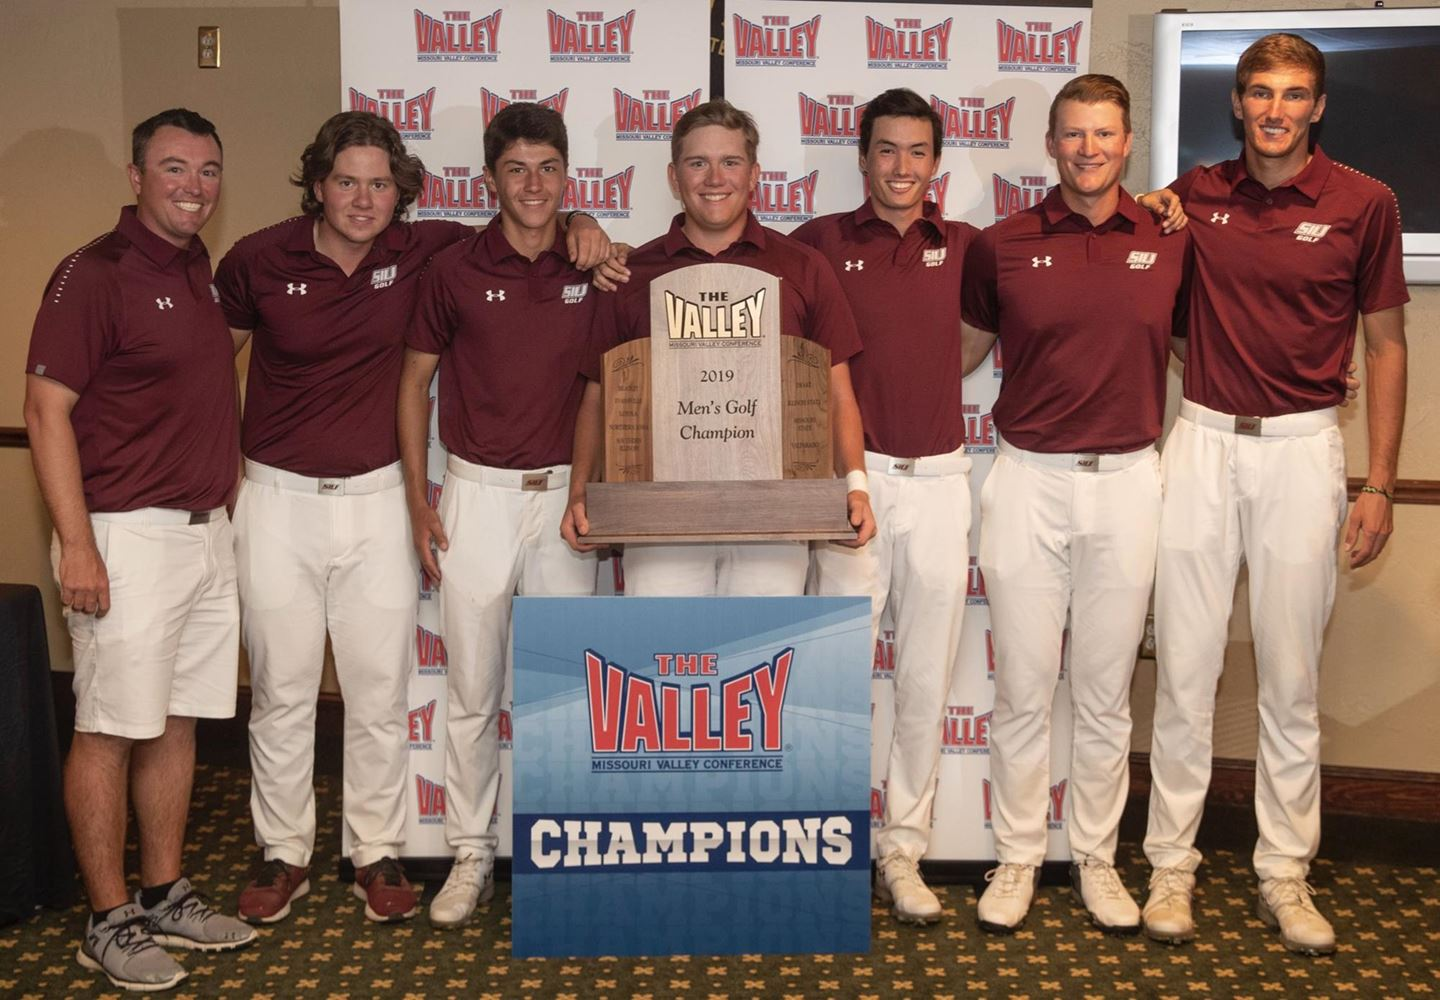 The SIU Men's Golf Team poses for a portrait on Tuesday, April 23, 2019, after winning the 2019 Missouri Valley Conference.